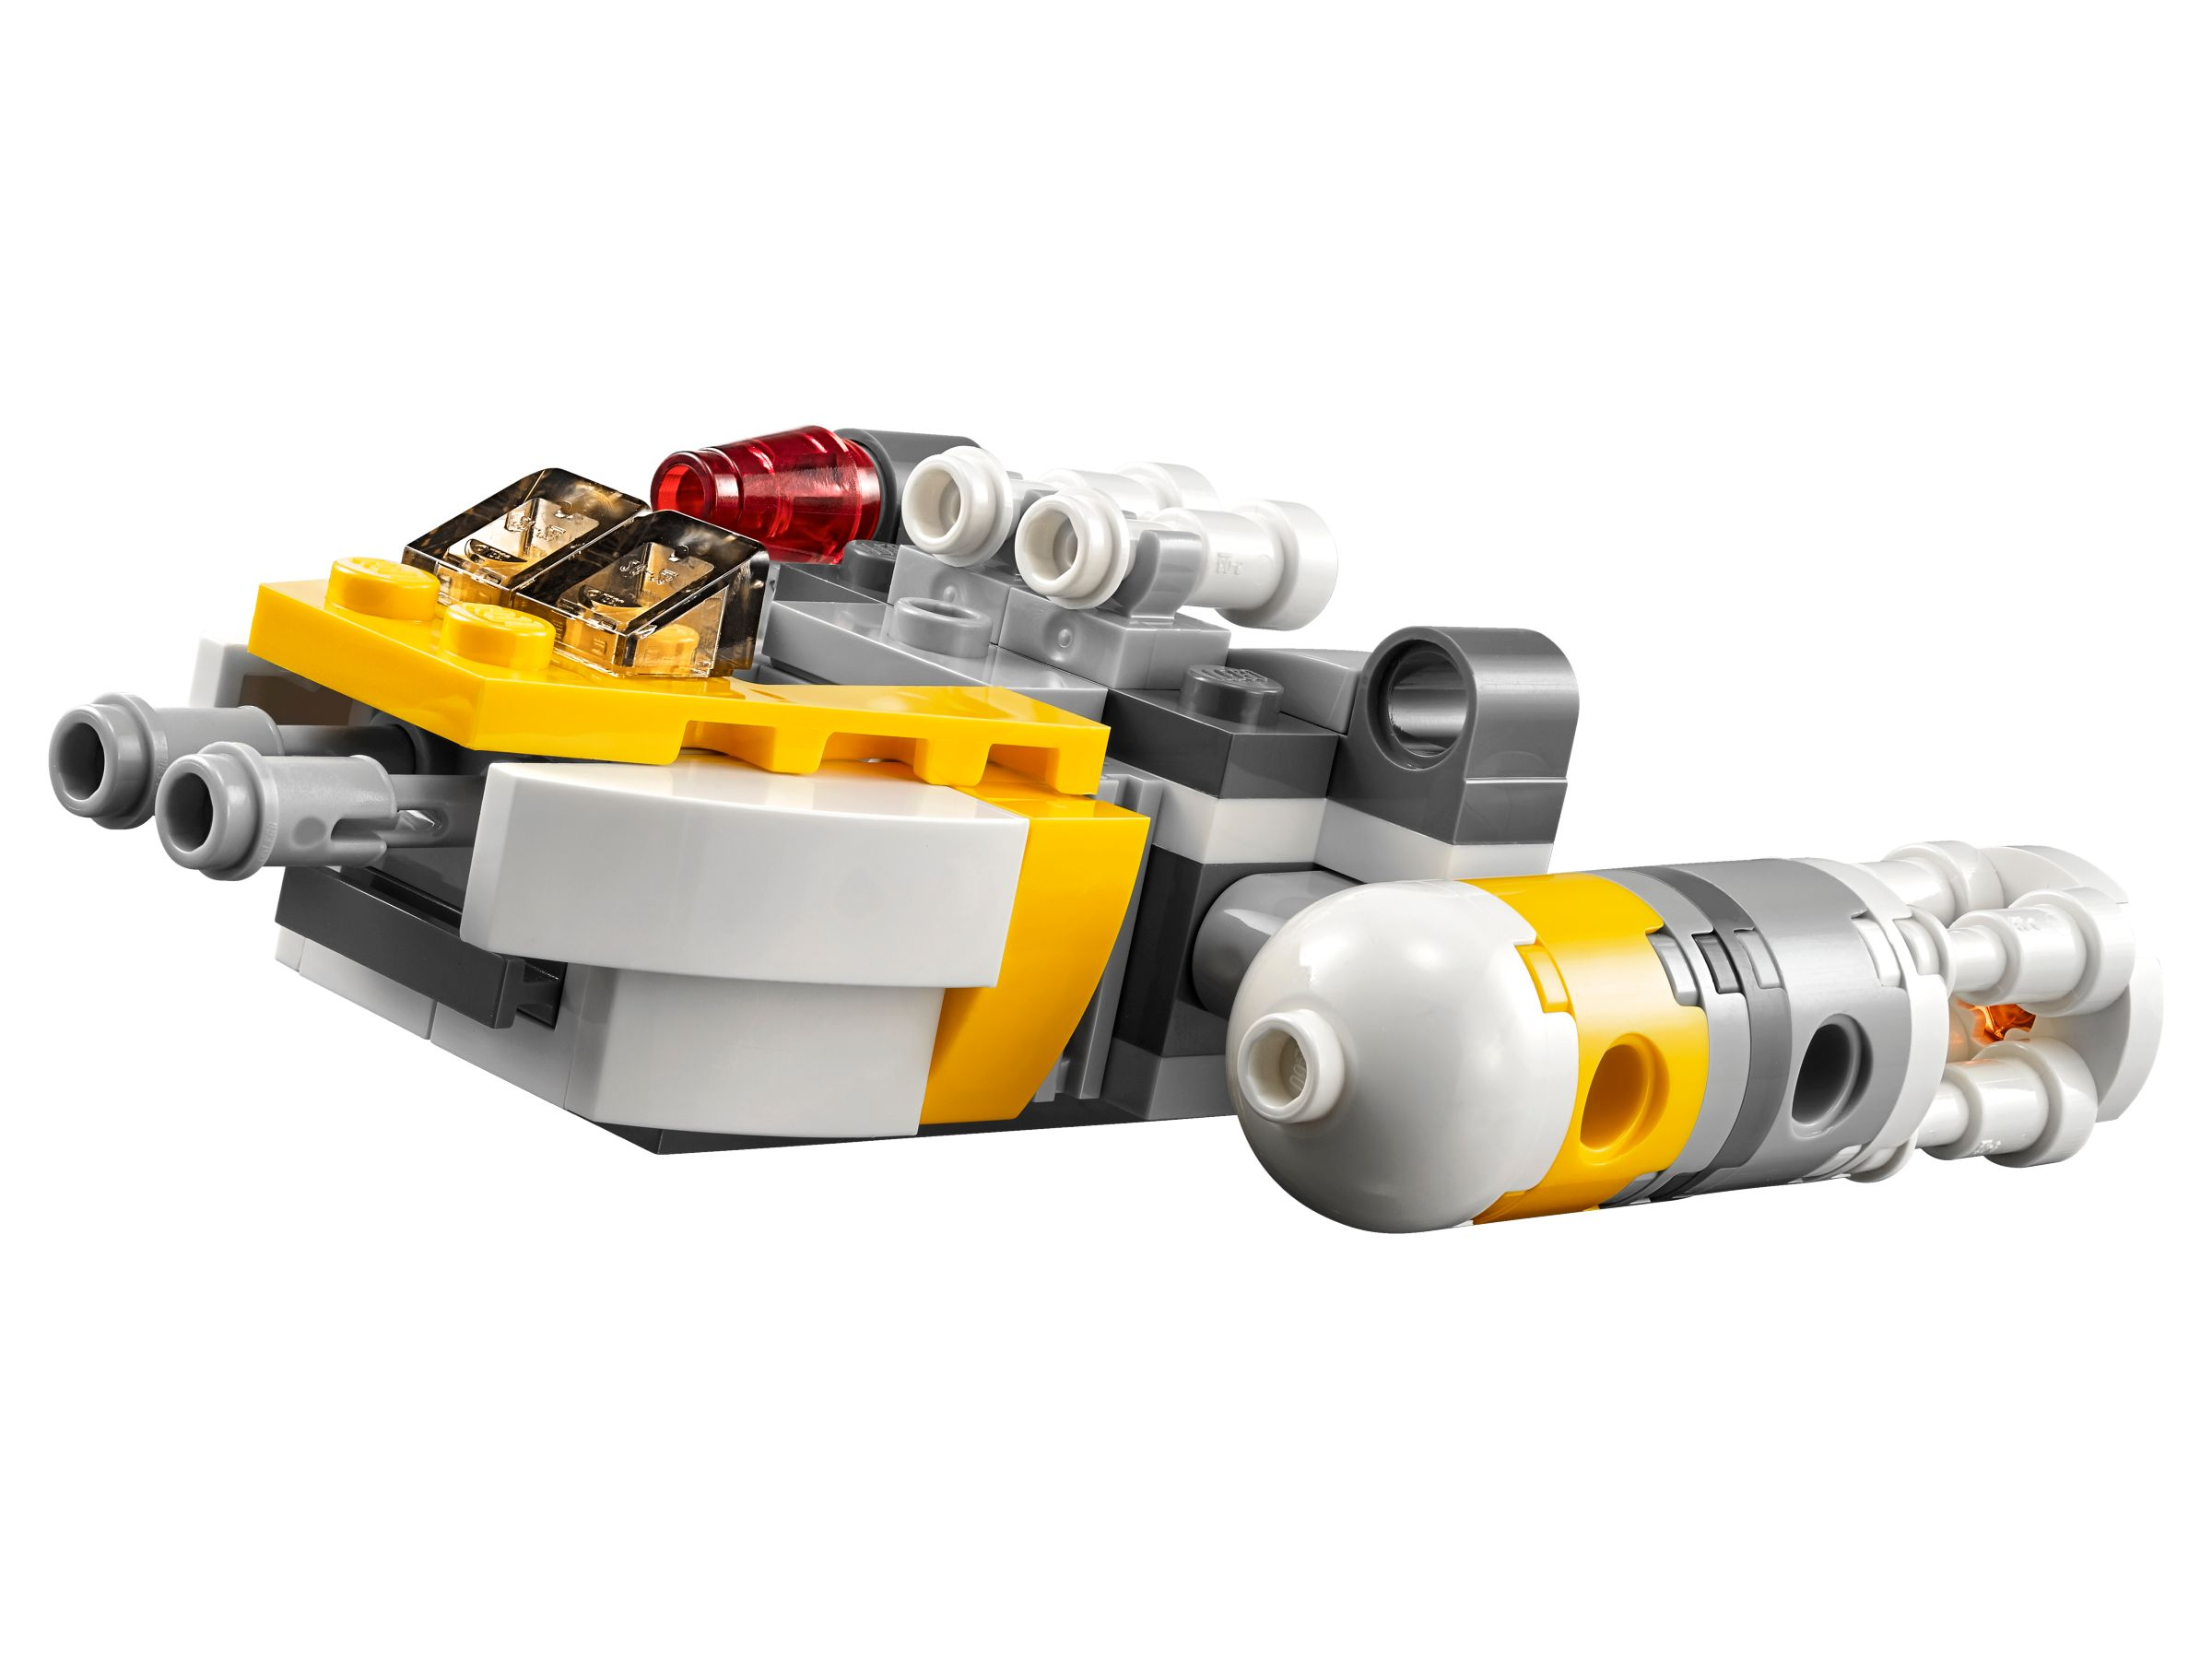 LEGO Star Wars 75162 Y-Wing™ Microfighter LEGO_75162_alt3.jpg